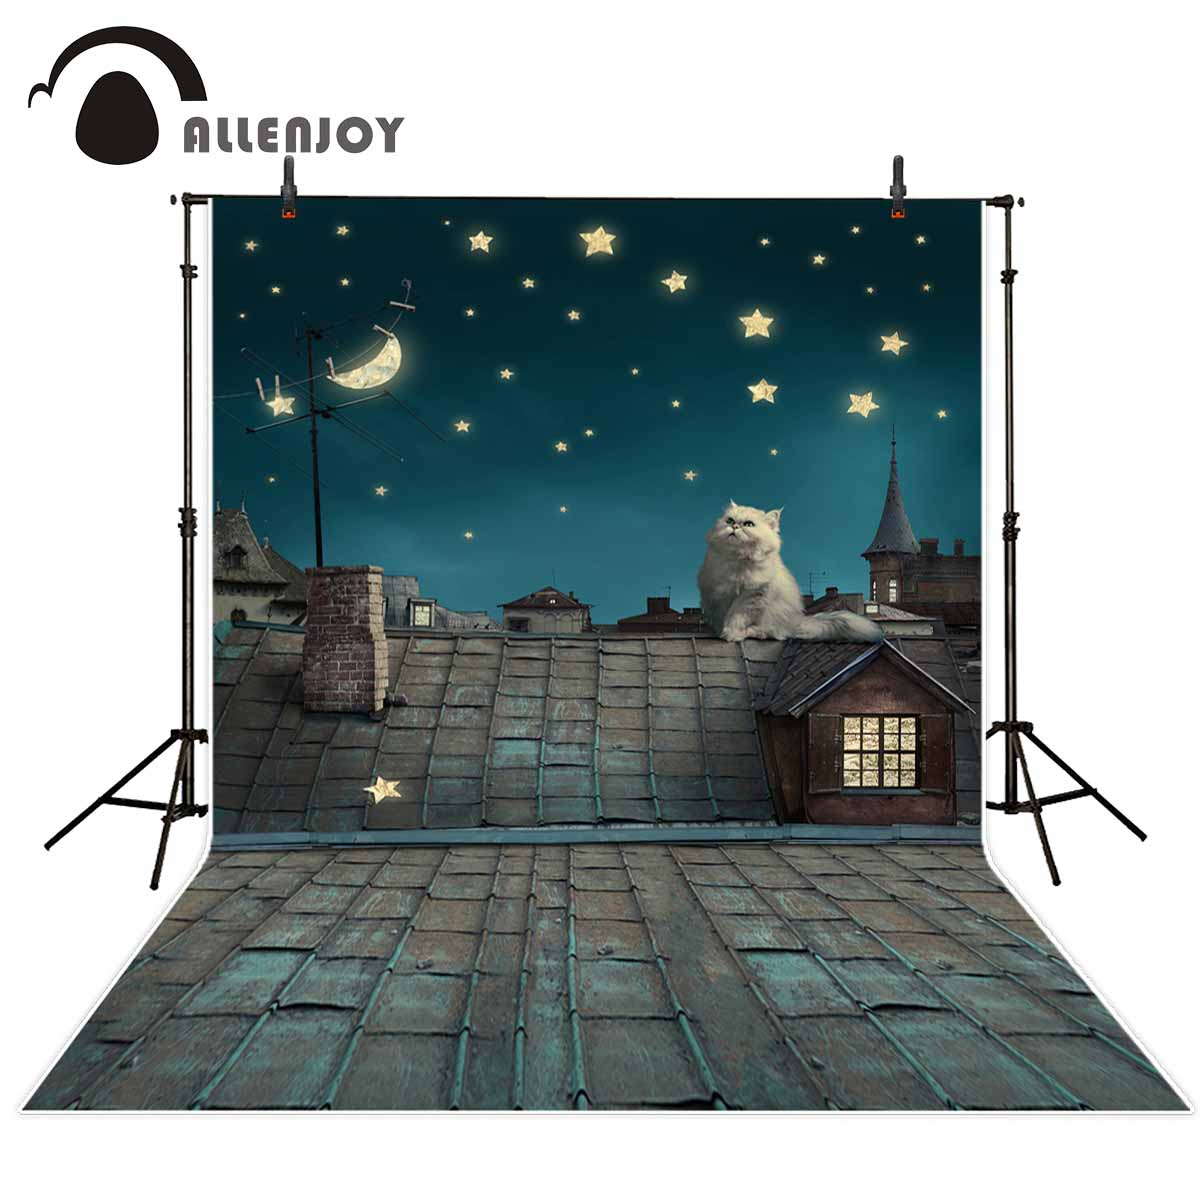 Allenjoy photo background Children backdrop cat night roof sky photographic background photography studio funds allenjoy background for photo studio full moon spider black cat pumpkin halloween backdrop newborn original design fantasy props